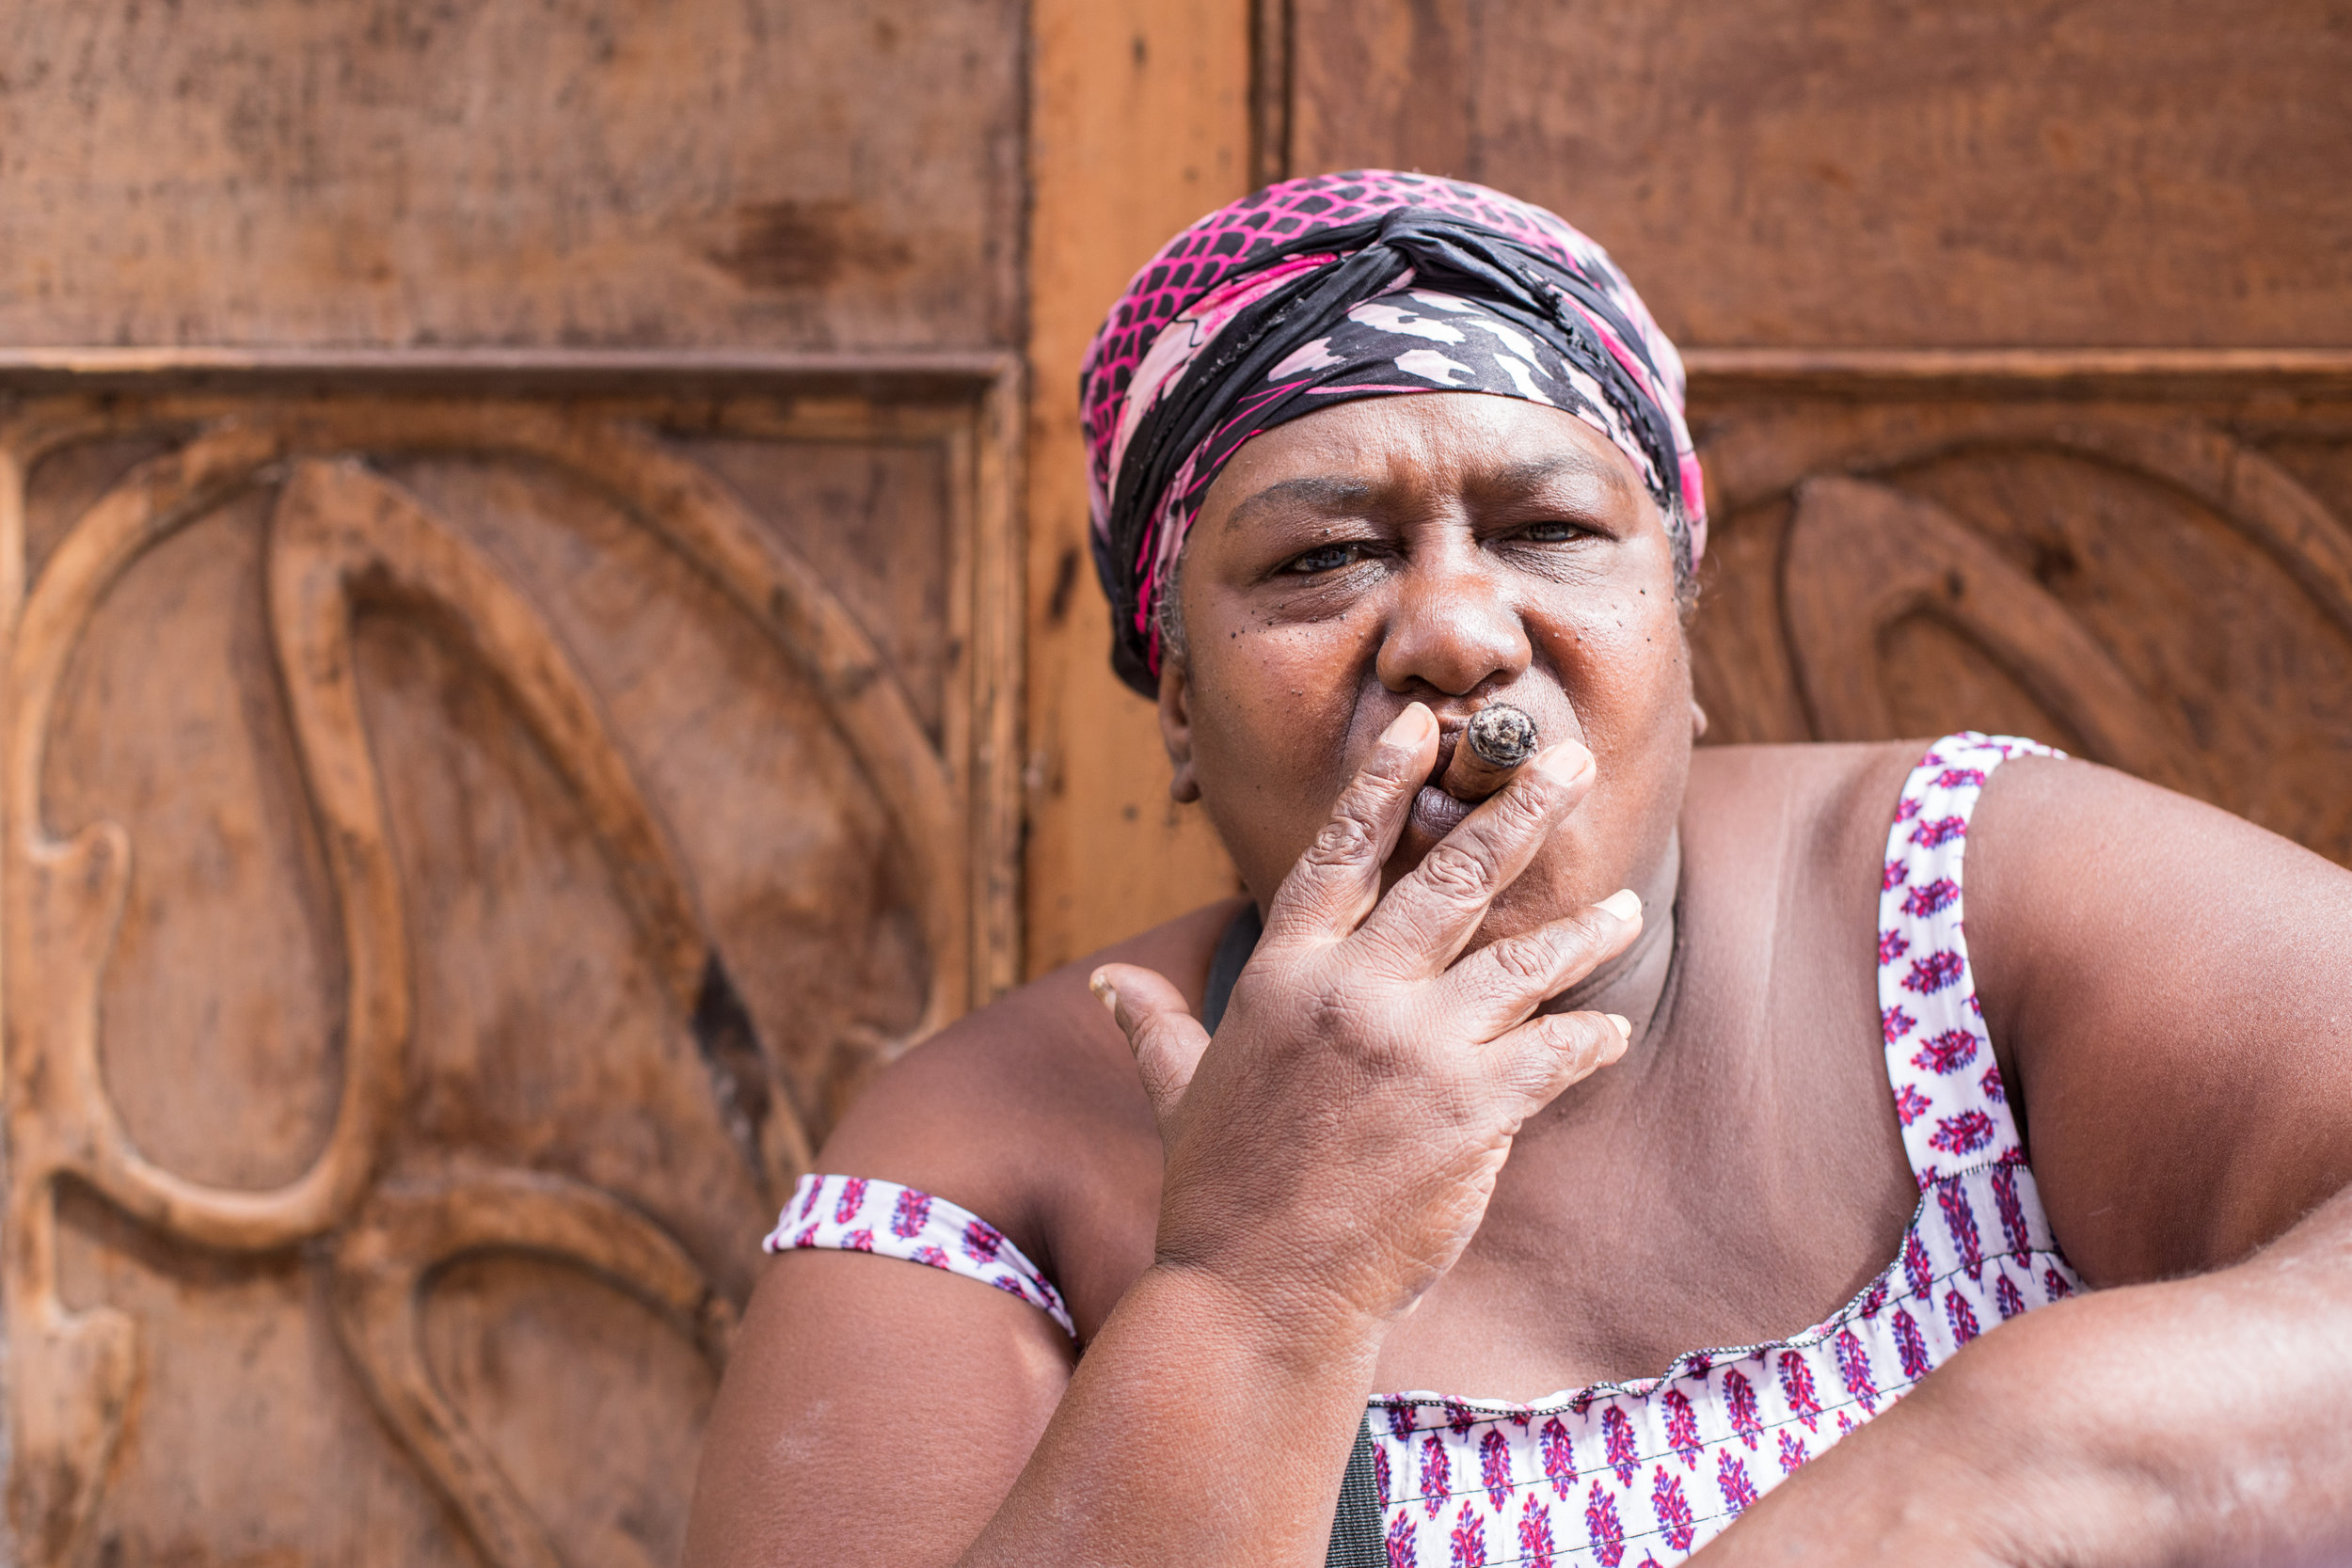 A large Latina women smokes a cigar on the streets of La Habana, Cuba.